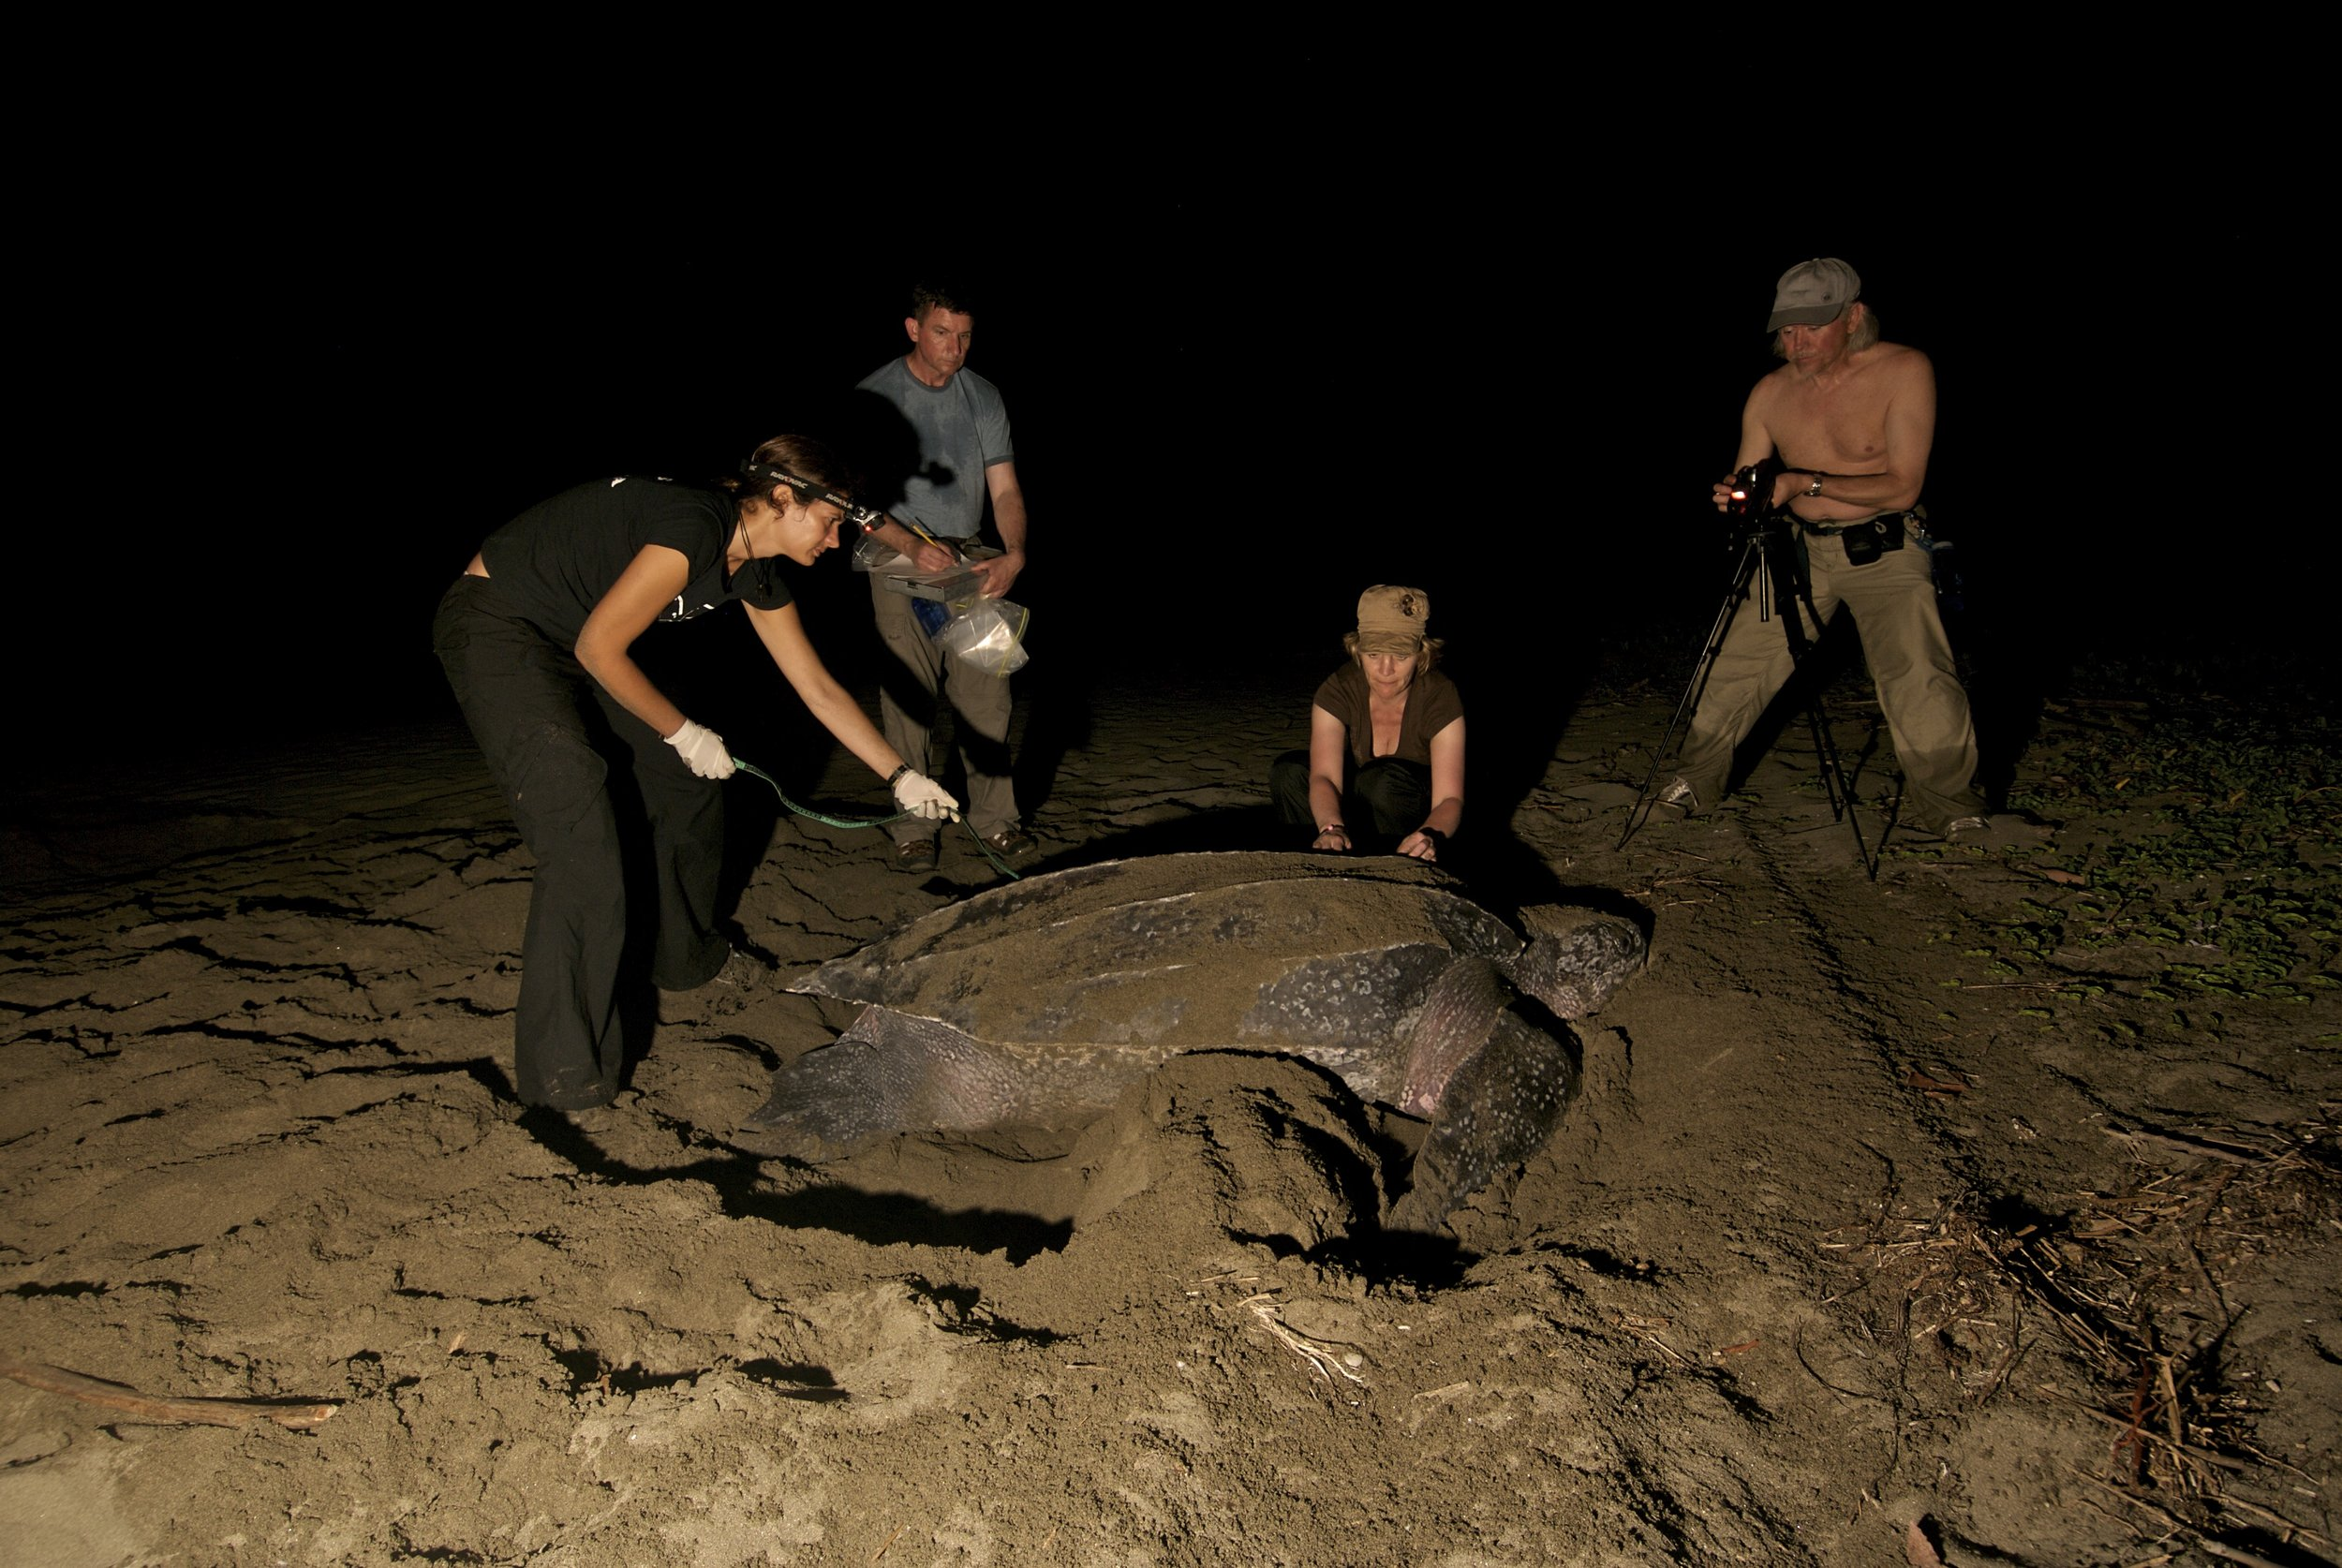 Night 2: First night patrol on the turtle nesting beach to look for leatherbacks